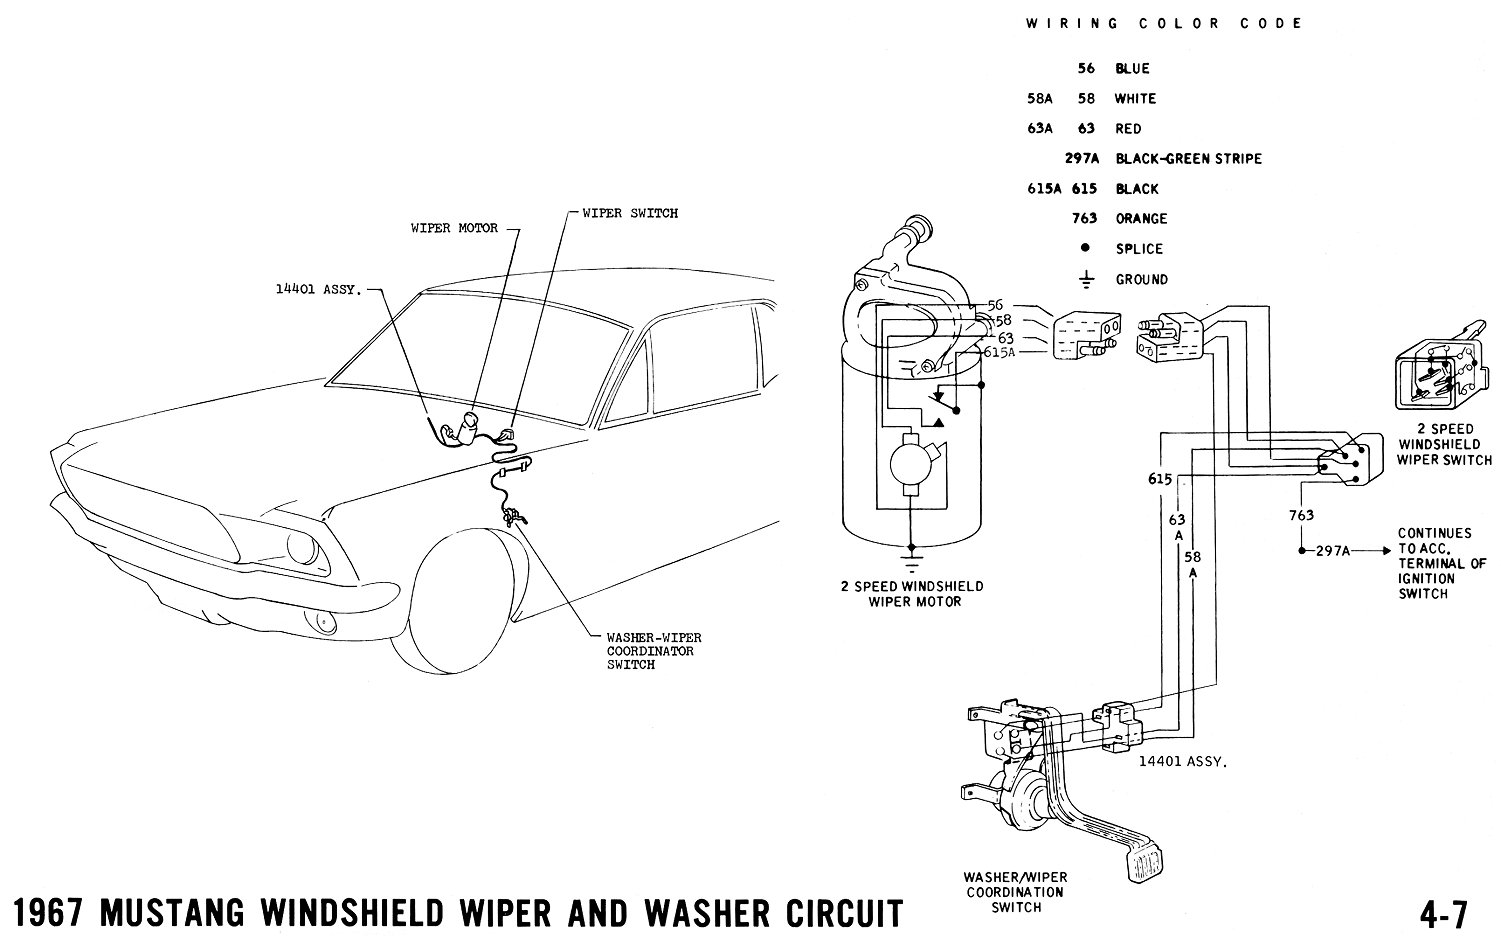 1966 mustang wiper motor wiring diagram trusted wiring diagram u2022 rh soulmatestyle co